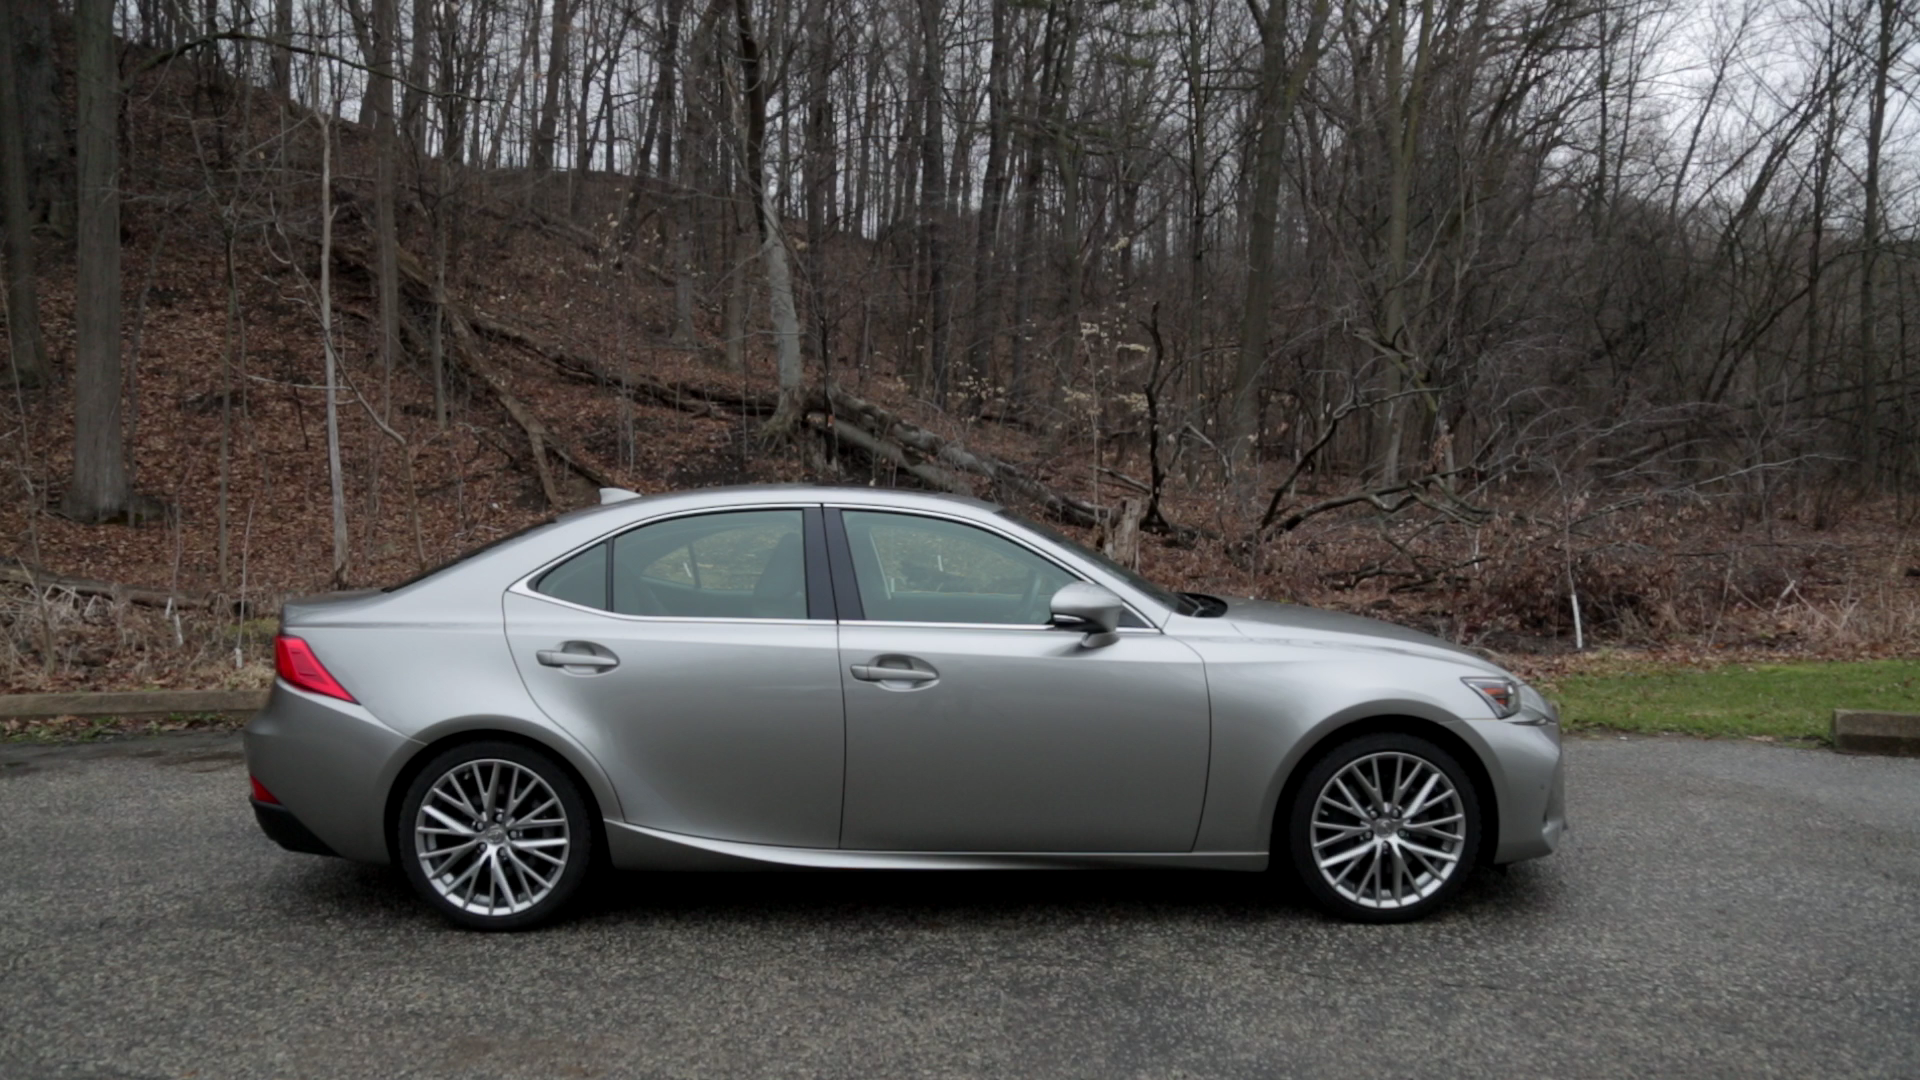 http://www.autoguide.com/blog/wp-content/gallery/2017-lexus-is-300-awd-review-rainy-photos/2017-Lexus-IS-300-AWD-Review-14.png